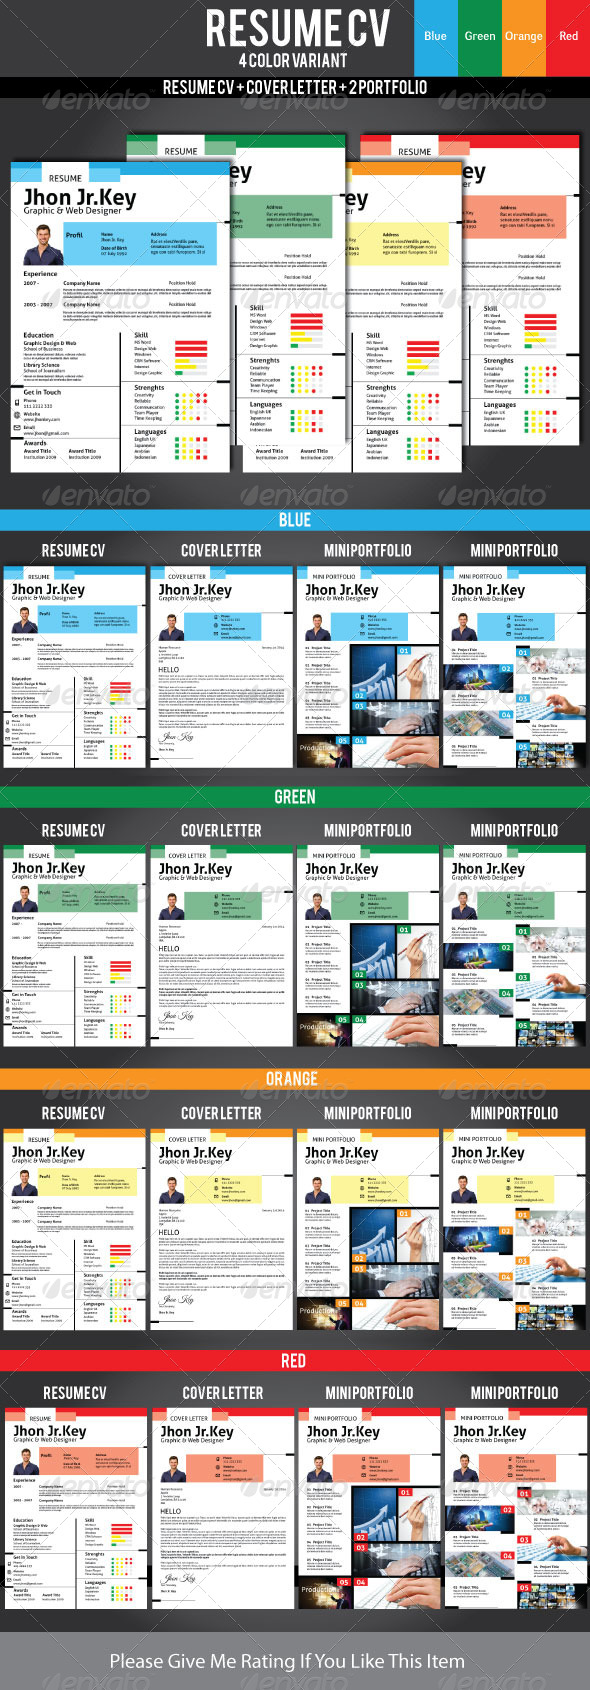 GraphicRiver Resume CV Template 6500004